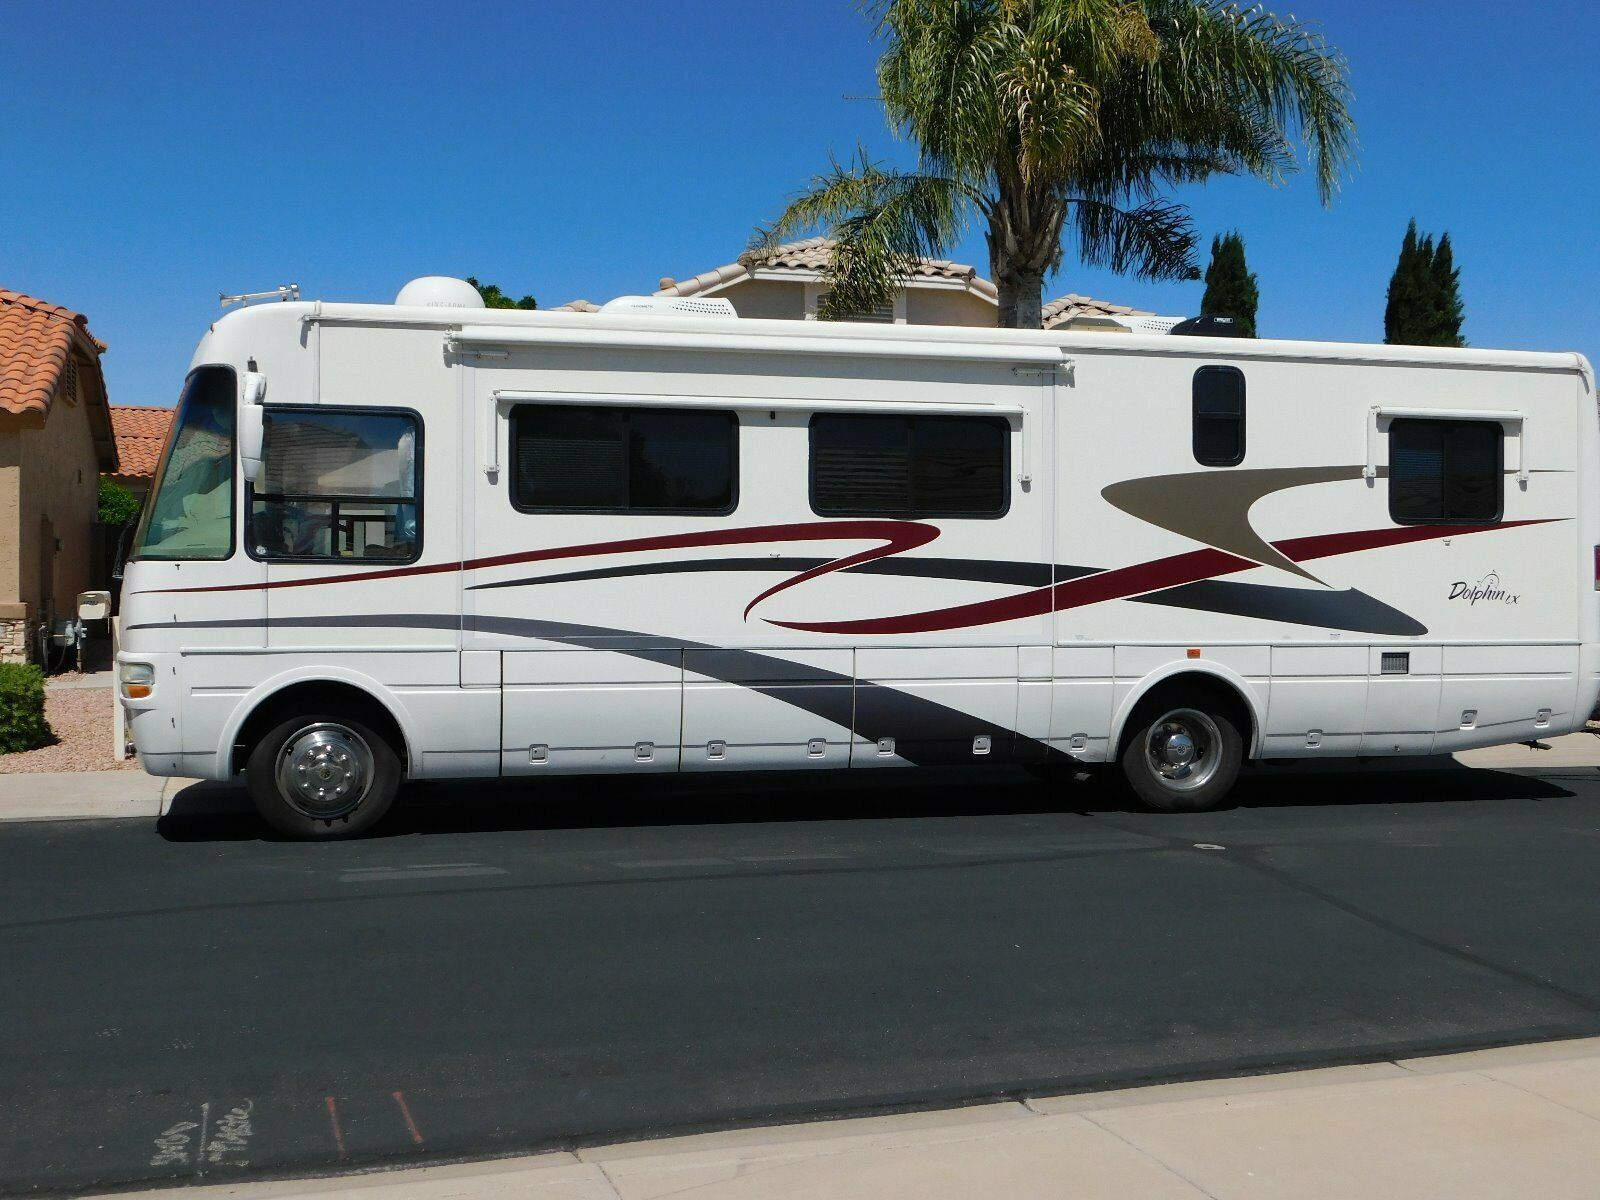 renewed 2003 National Dolphin LX 6342 camper for sale